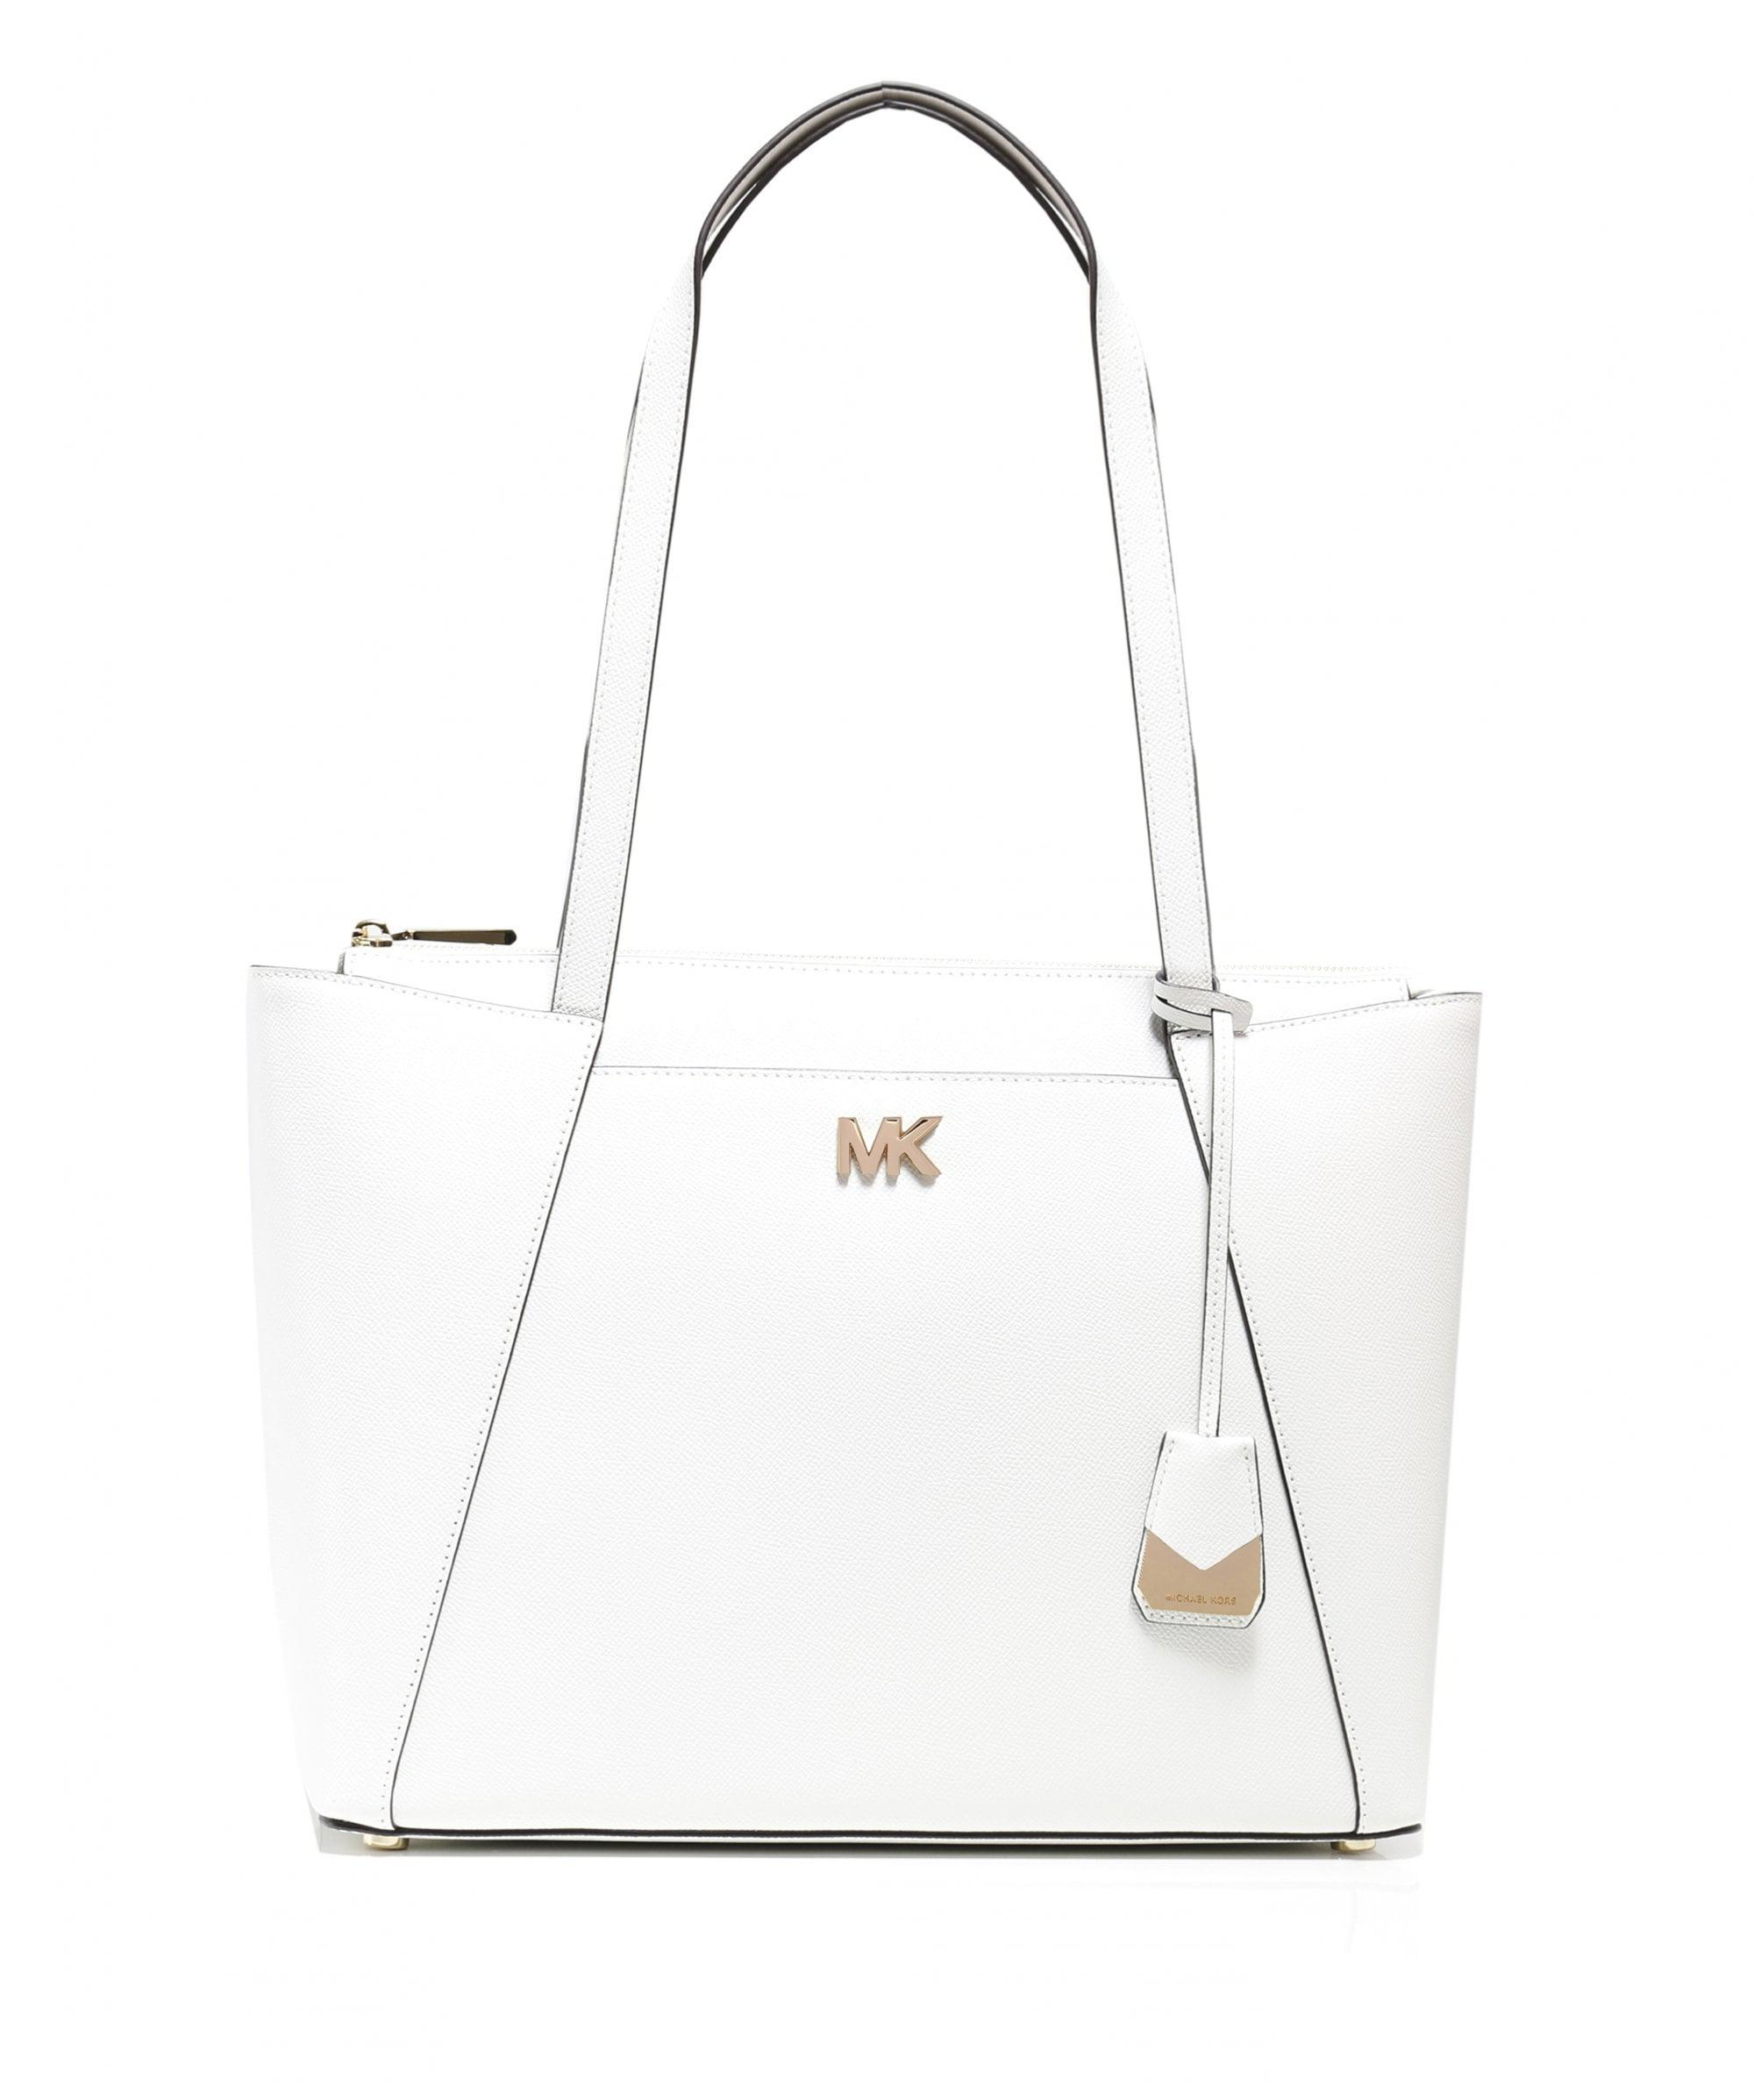 87261a80d1d9 MICHAEL Michael Kors Maddie Medium Leather Tote Bag in White - Lyst